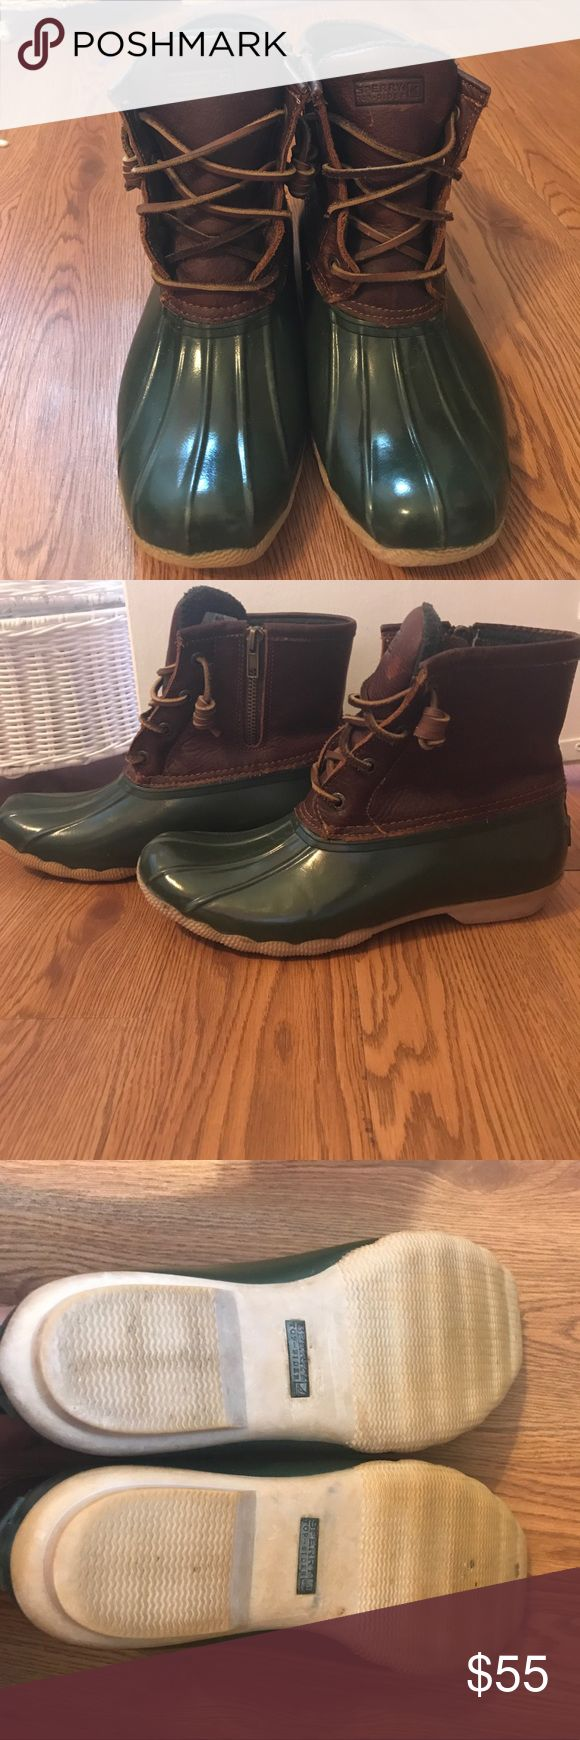 Sperry Top-Sider boot Rain boot with leather top. Zipper on one side. Leather top shows some wear. Inside of shoe is really warm and has flannel type material. Worn but in great condition. Photos are accurate depiction of the condition the shoes are in. Reach on with questions / offers! Sperry Top-Sider Shoes